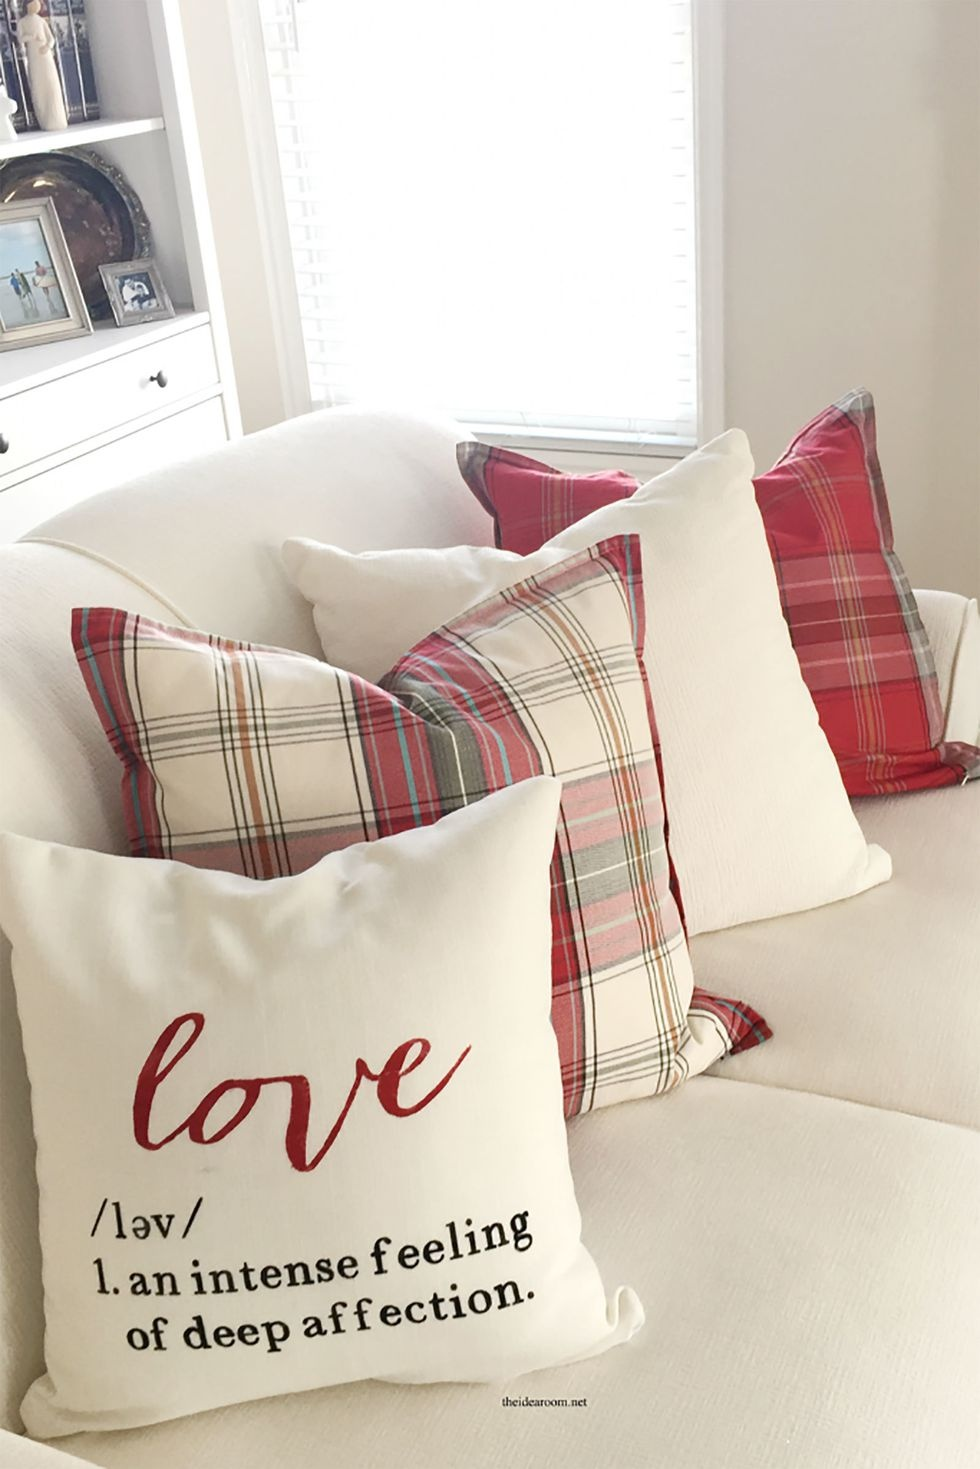 gallery-1510951686-valentines-day-pillow-2-683x1024-copy